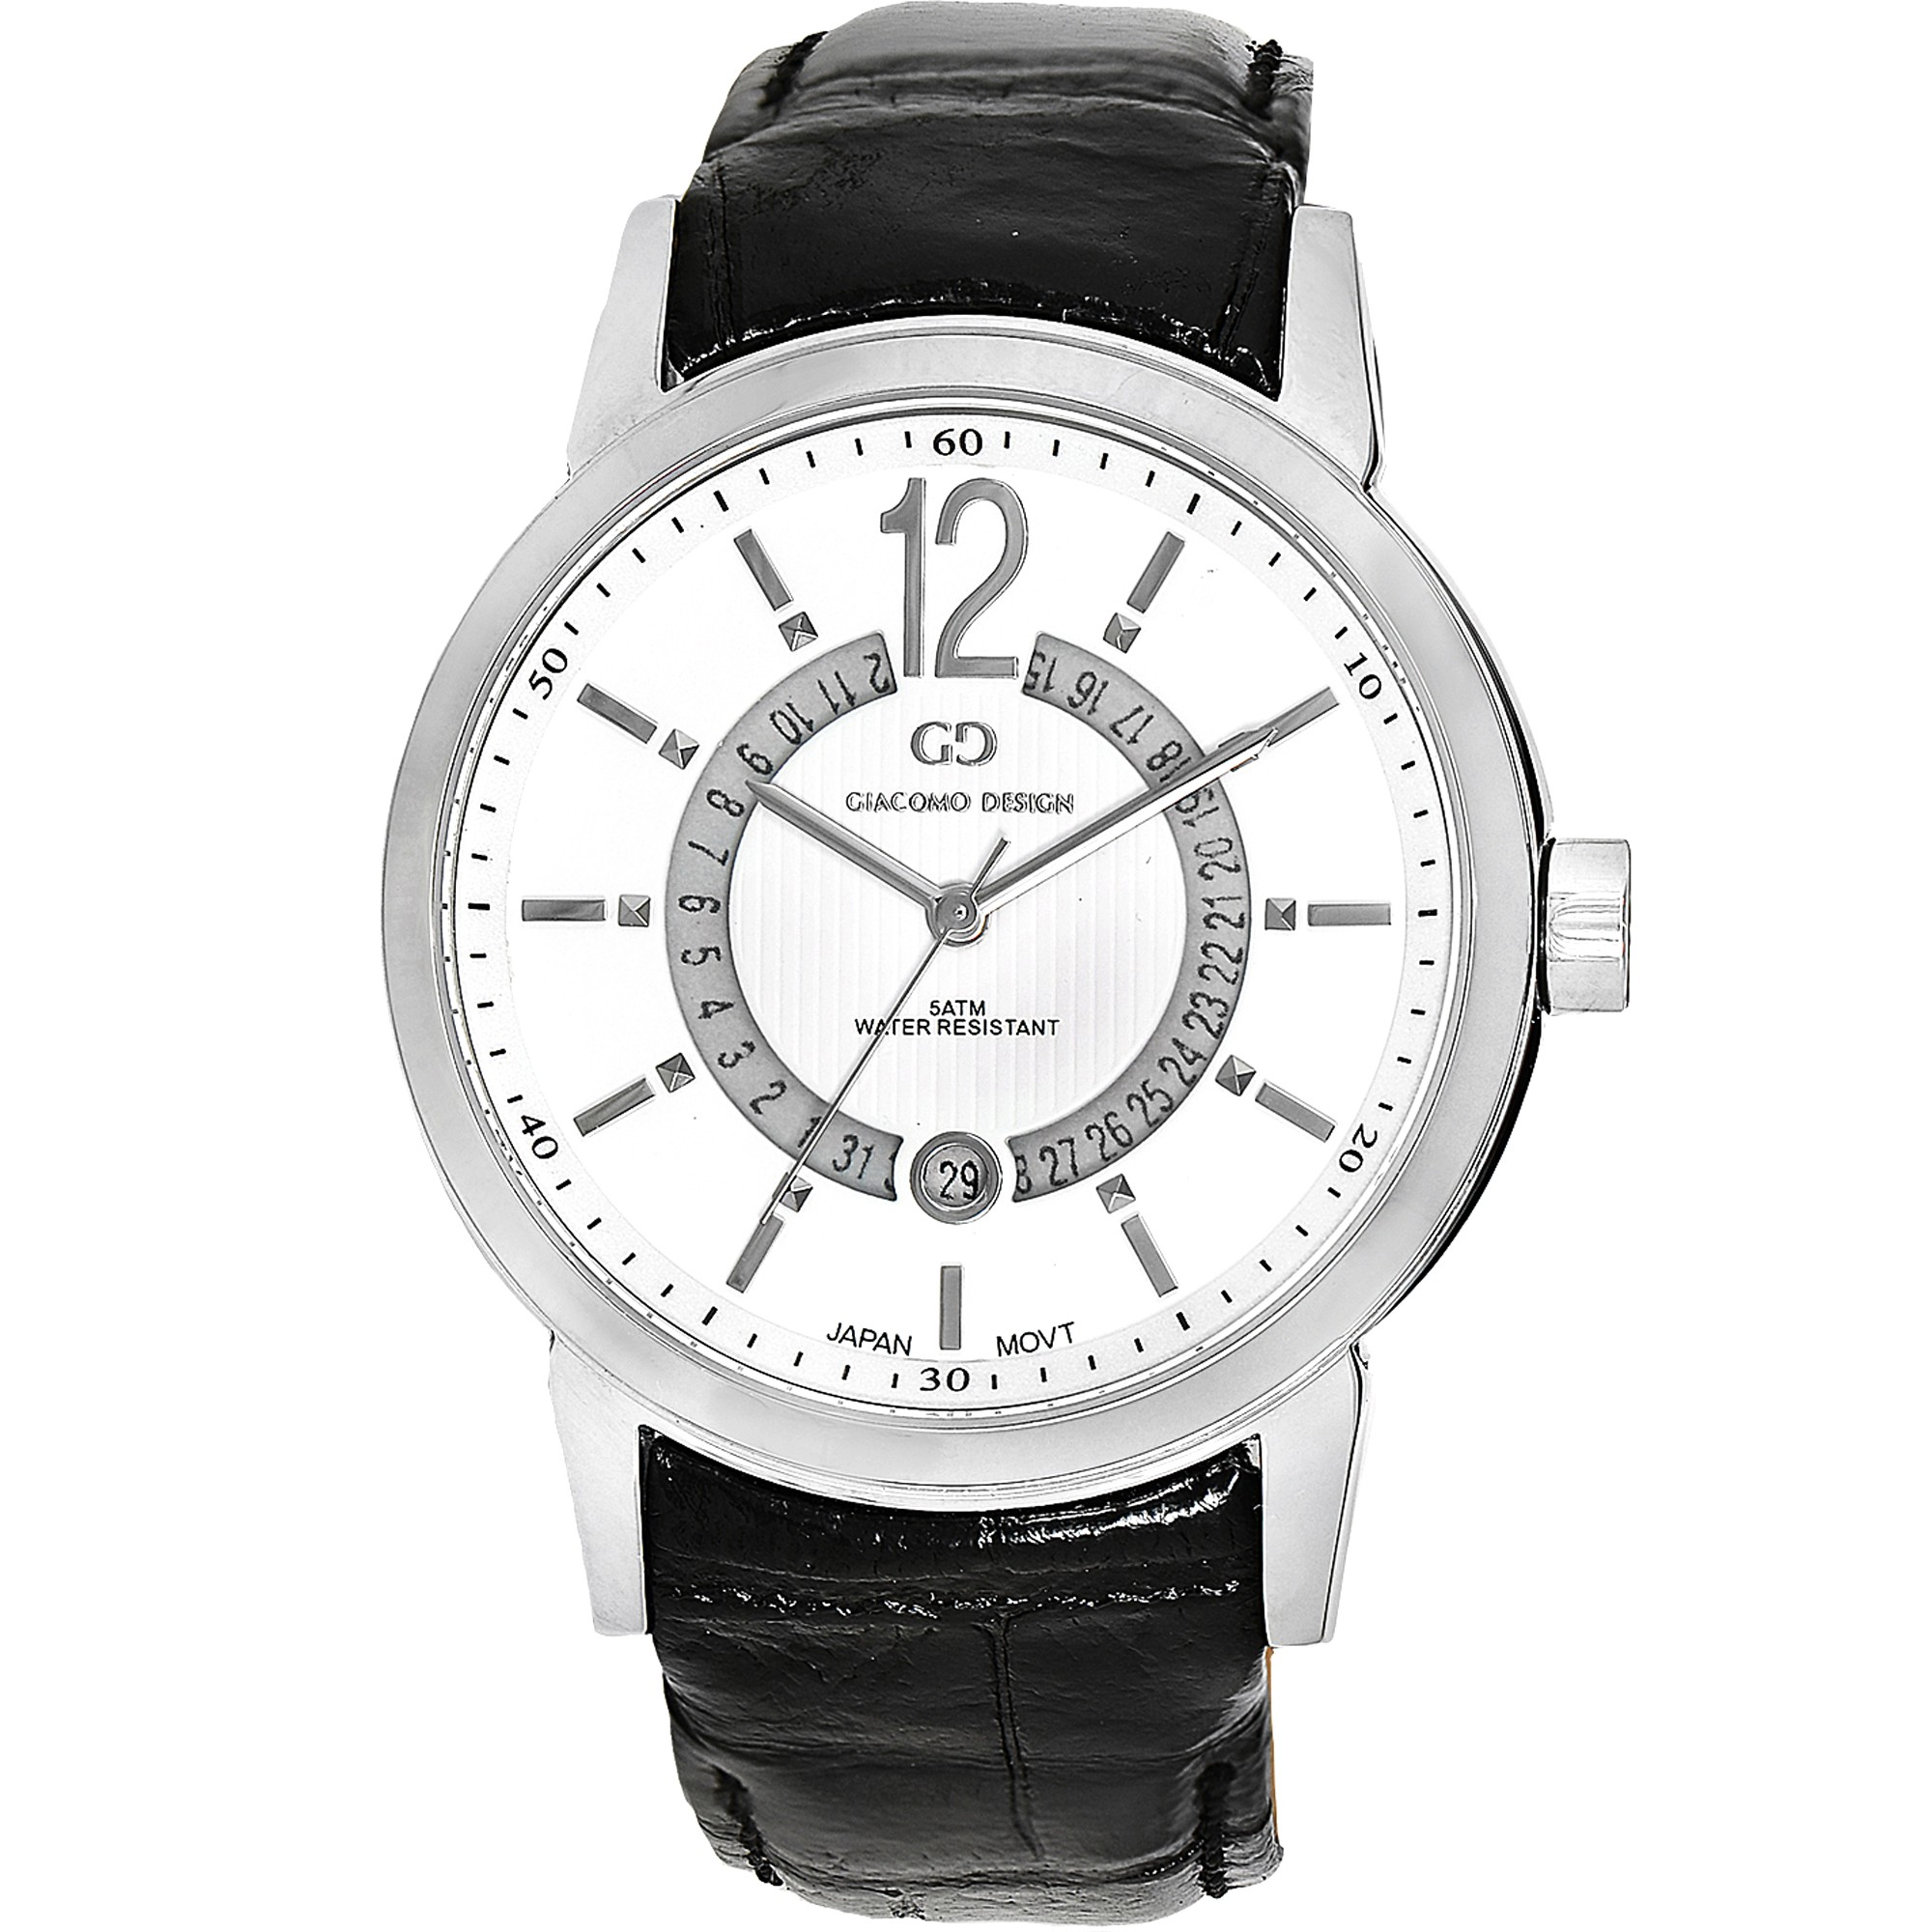 the roger finger watches mafia leather mini products tallon black watch strap by in lip